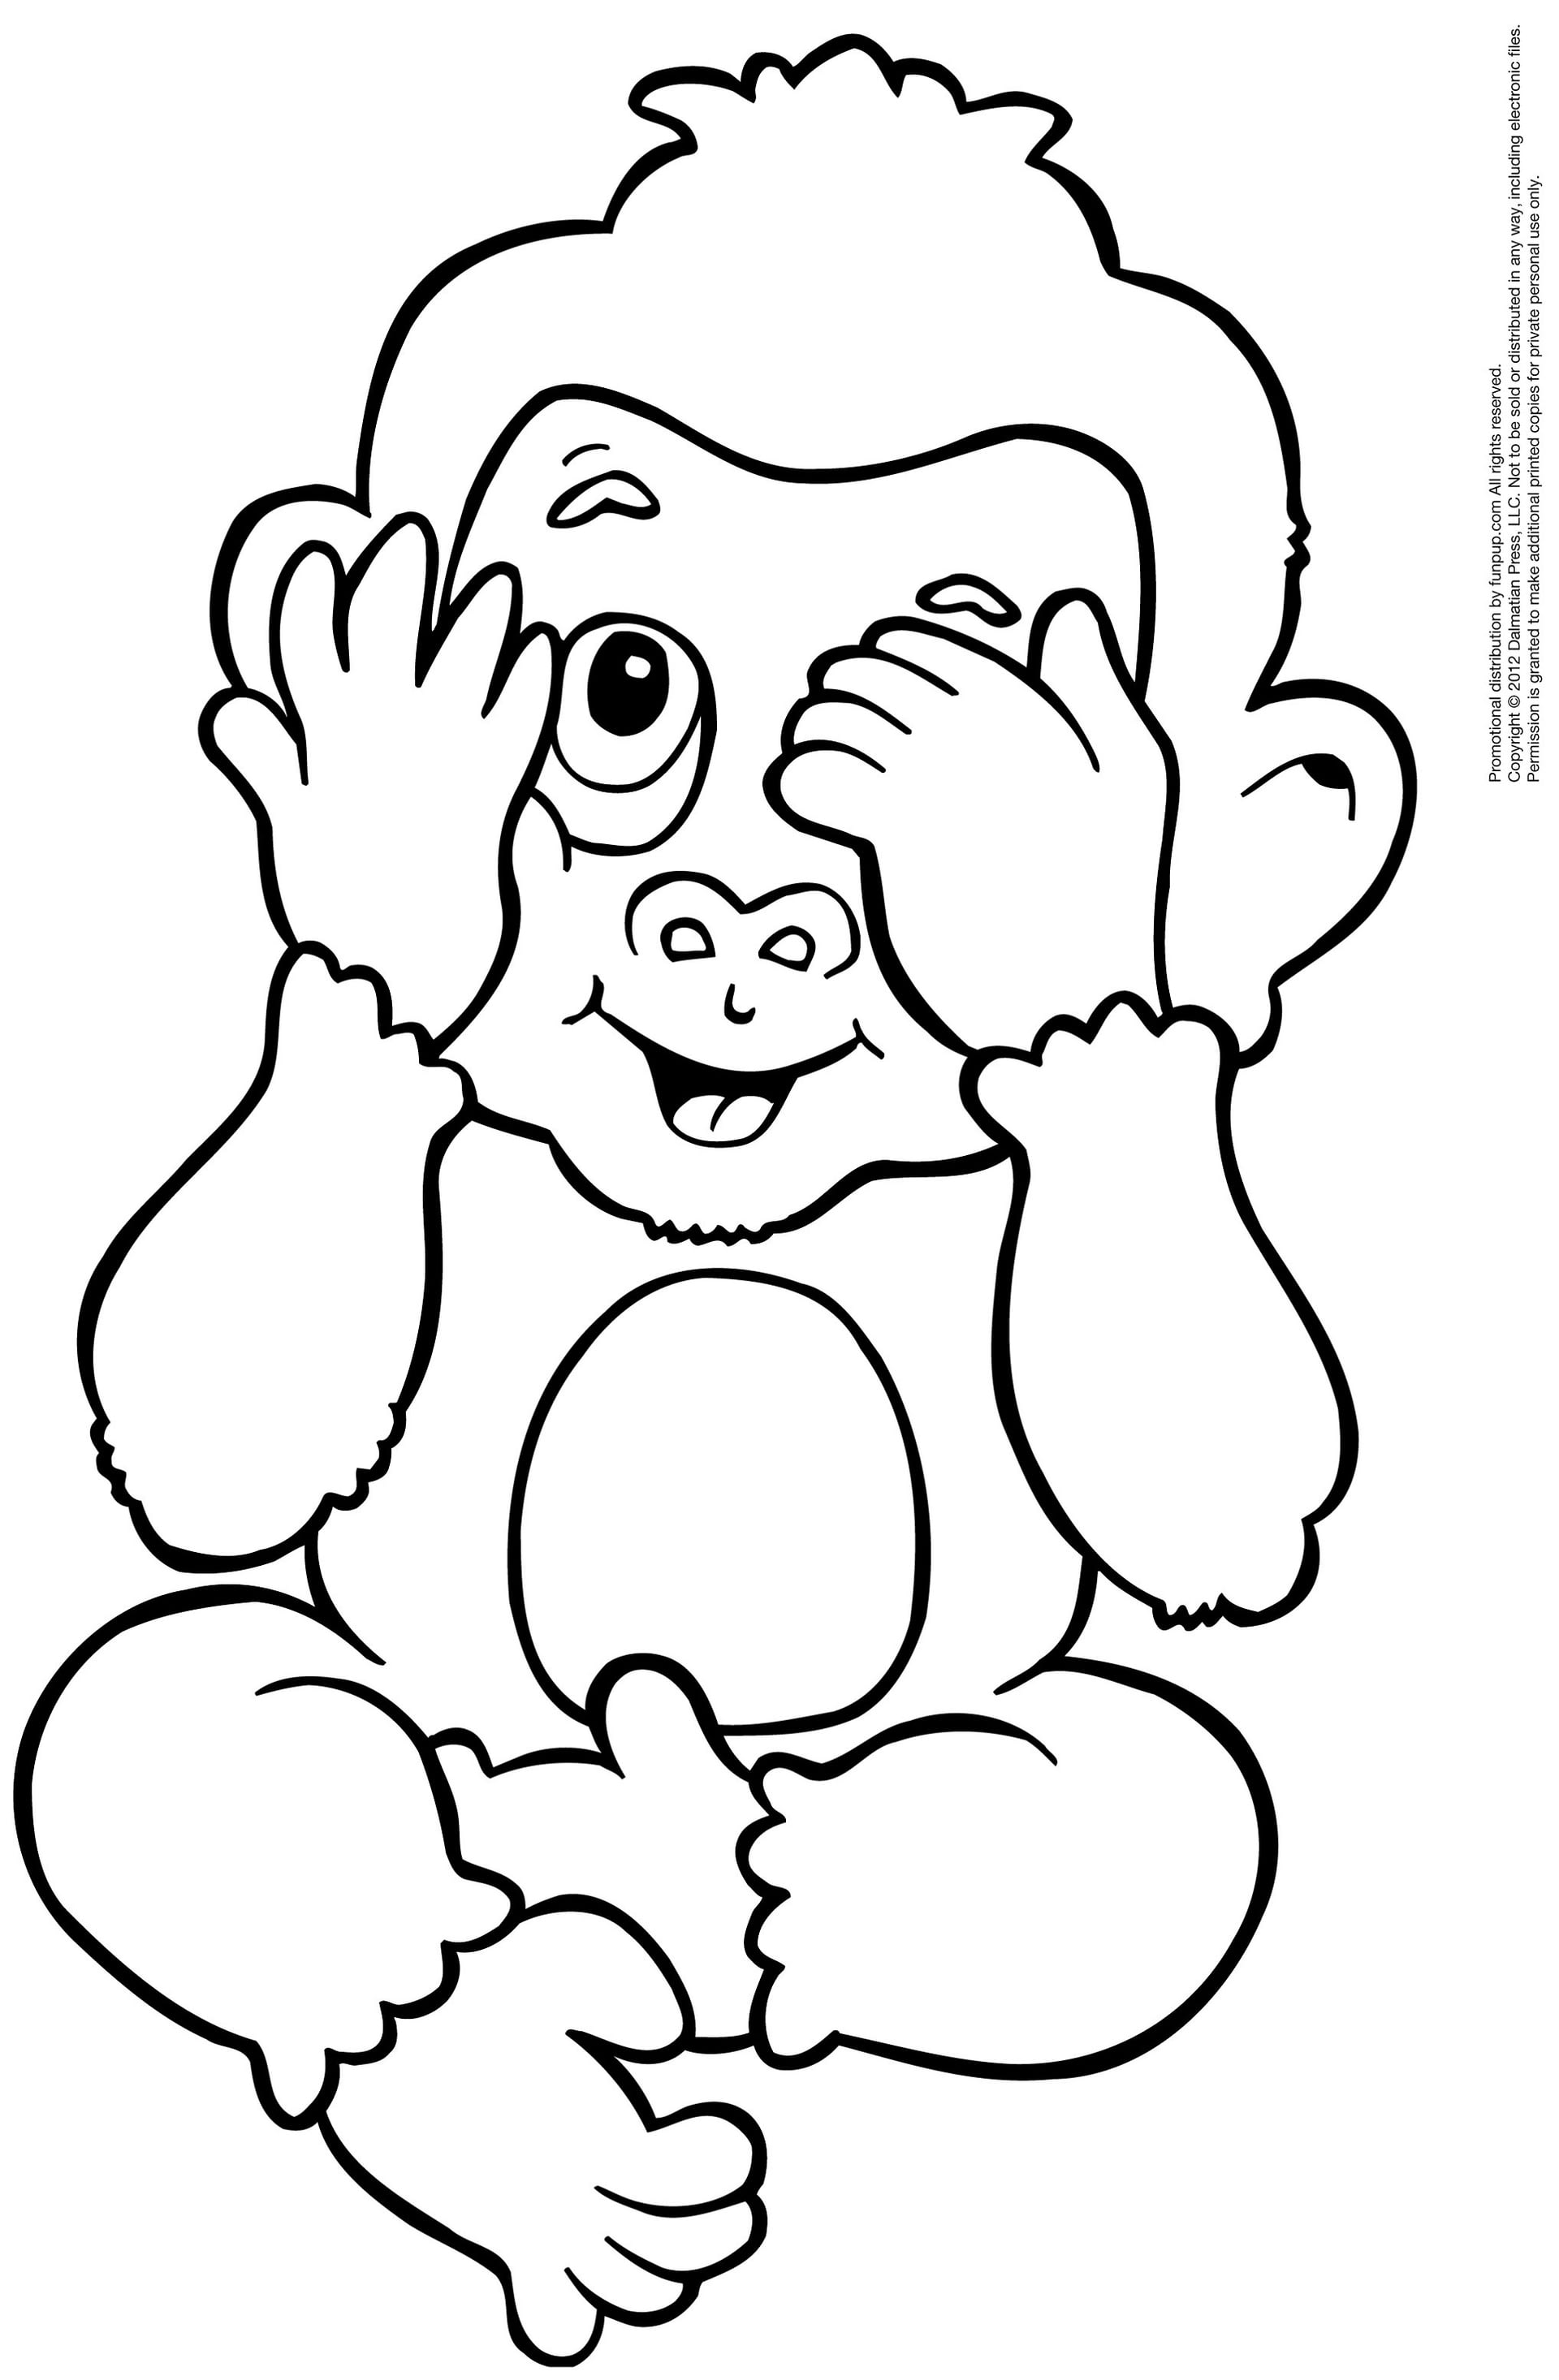 coloring pages of monkey monkey worksheets and coloring pages monkey of pages coloring